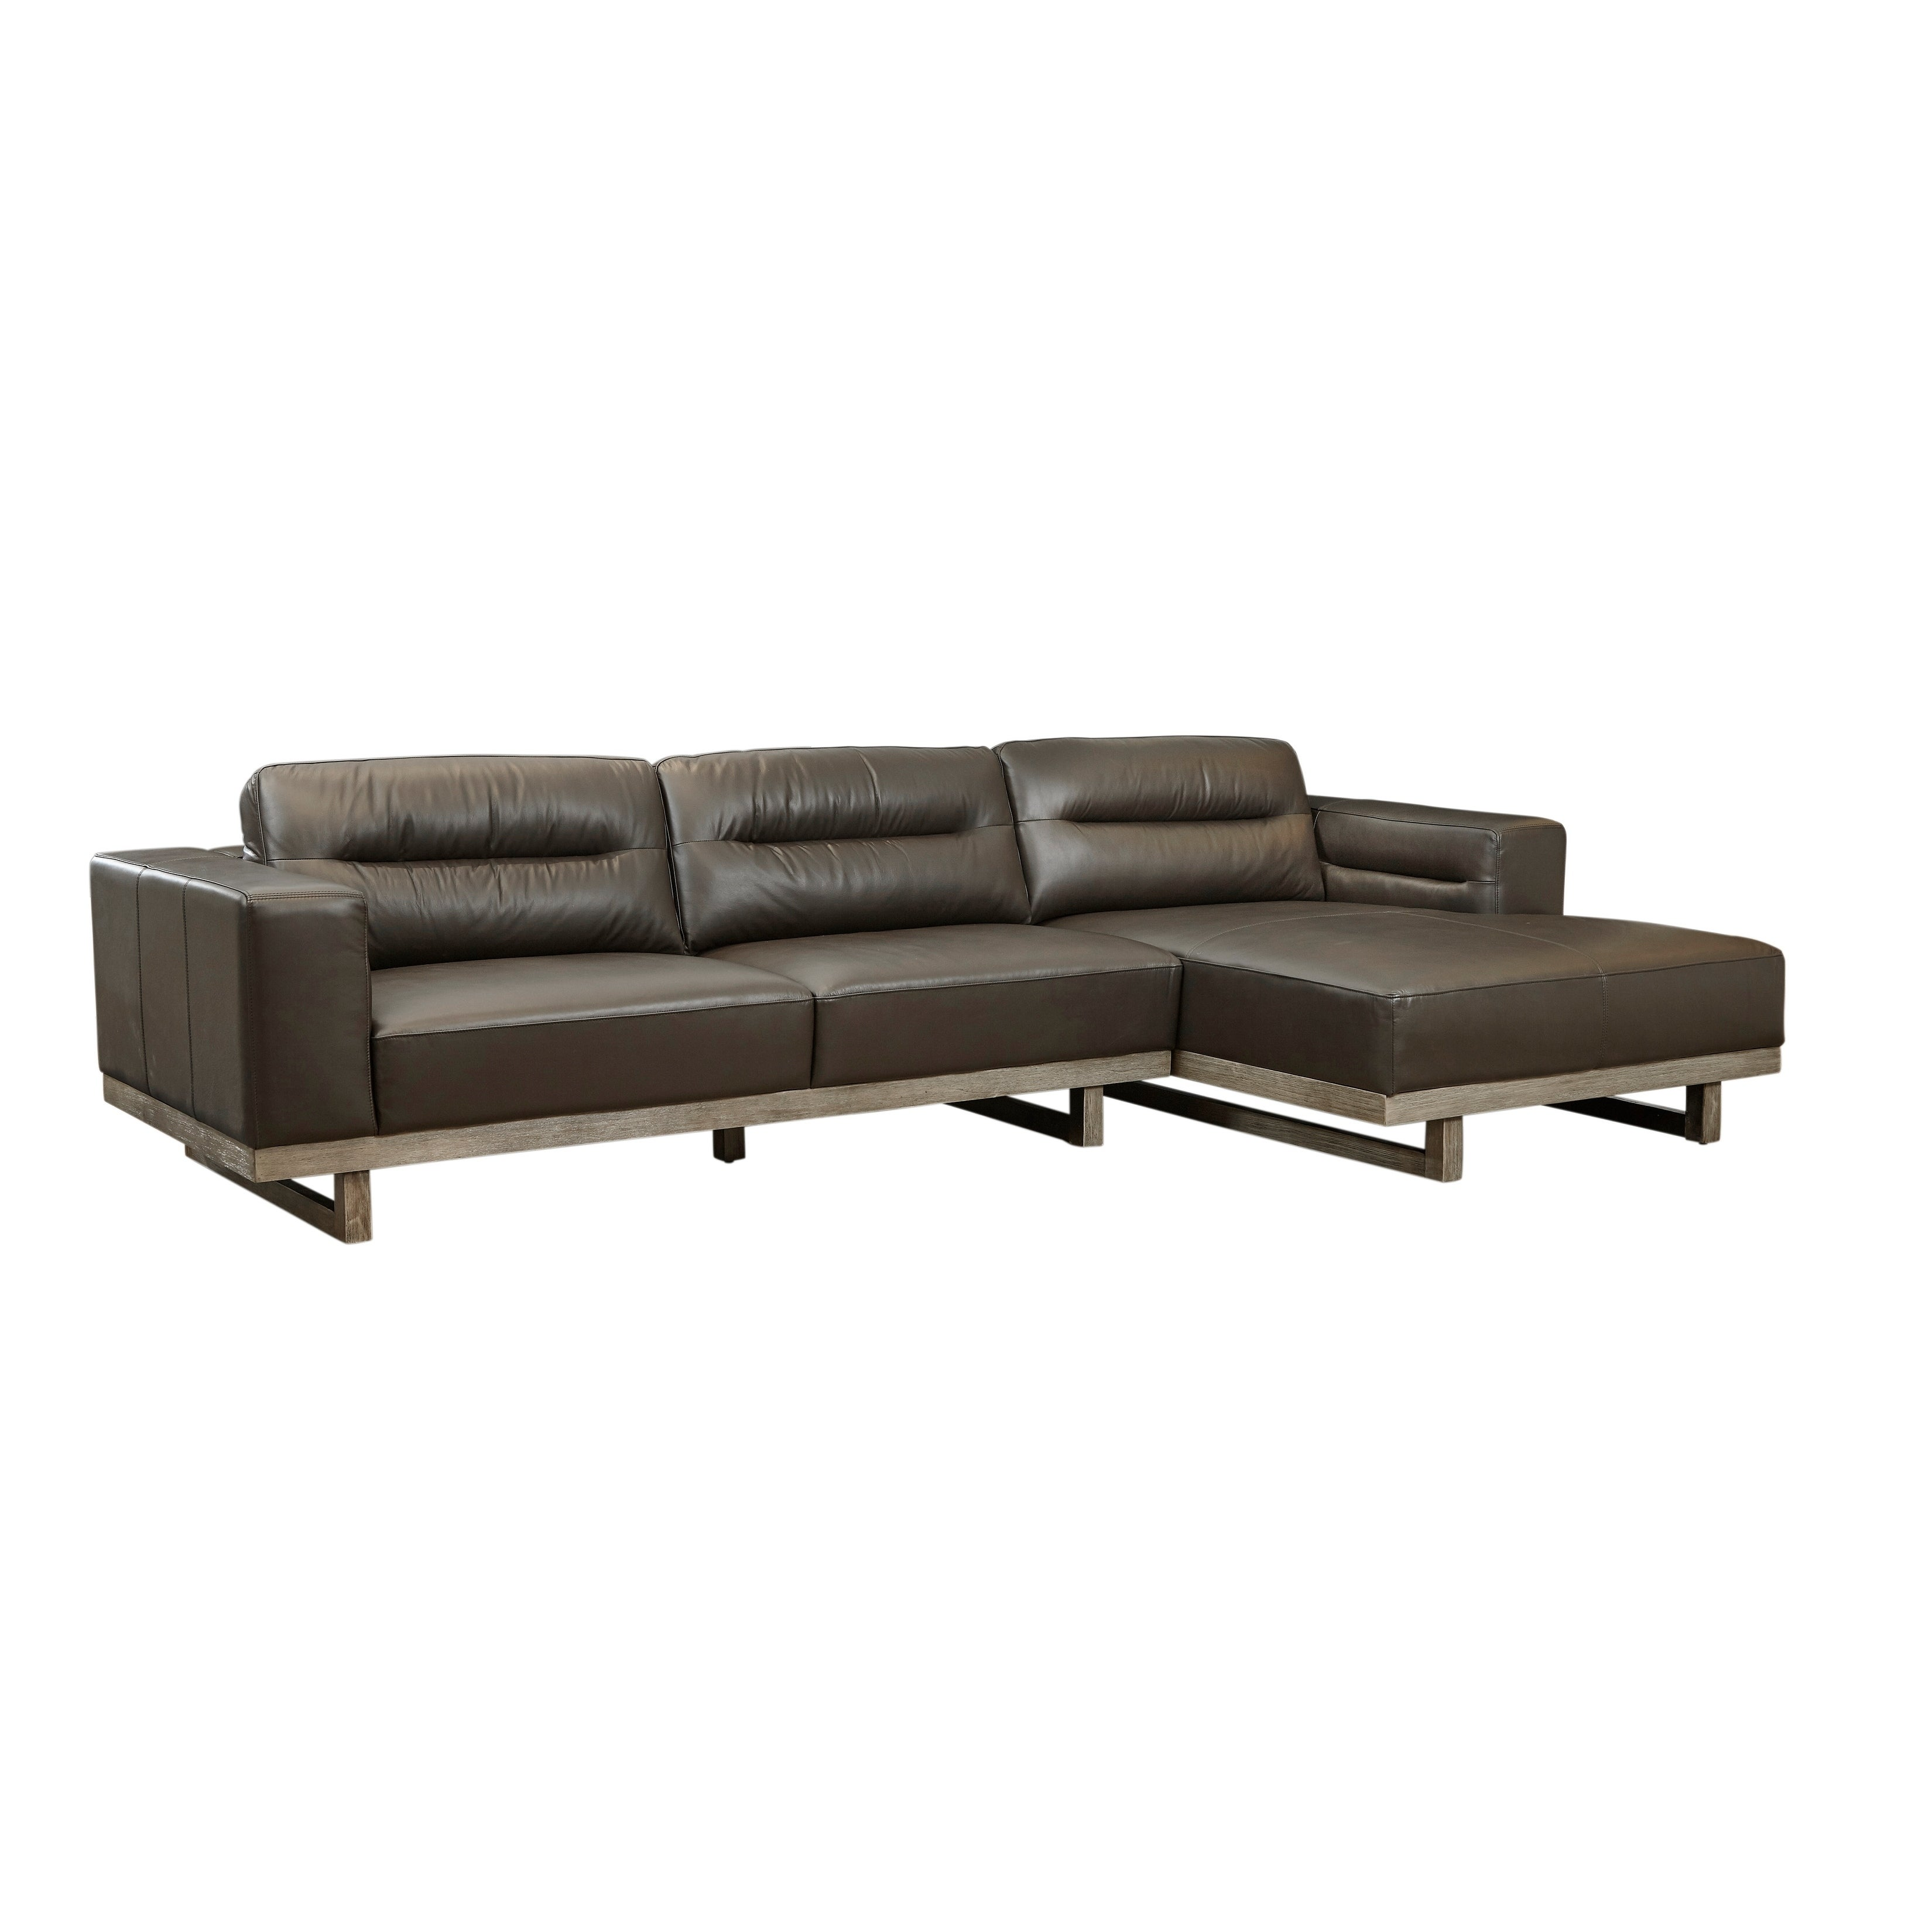 Stupendous Lazzaro Leather Cooper Sofa Sectional Andrewgaddart Wooden Chair Designs For Living Room Andrewgaddartcom